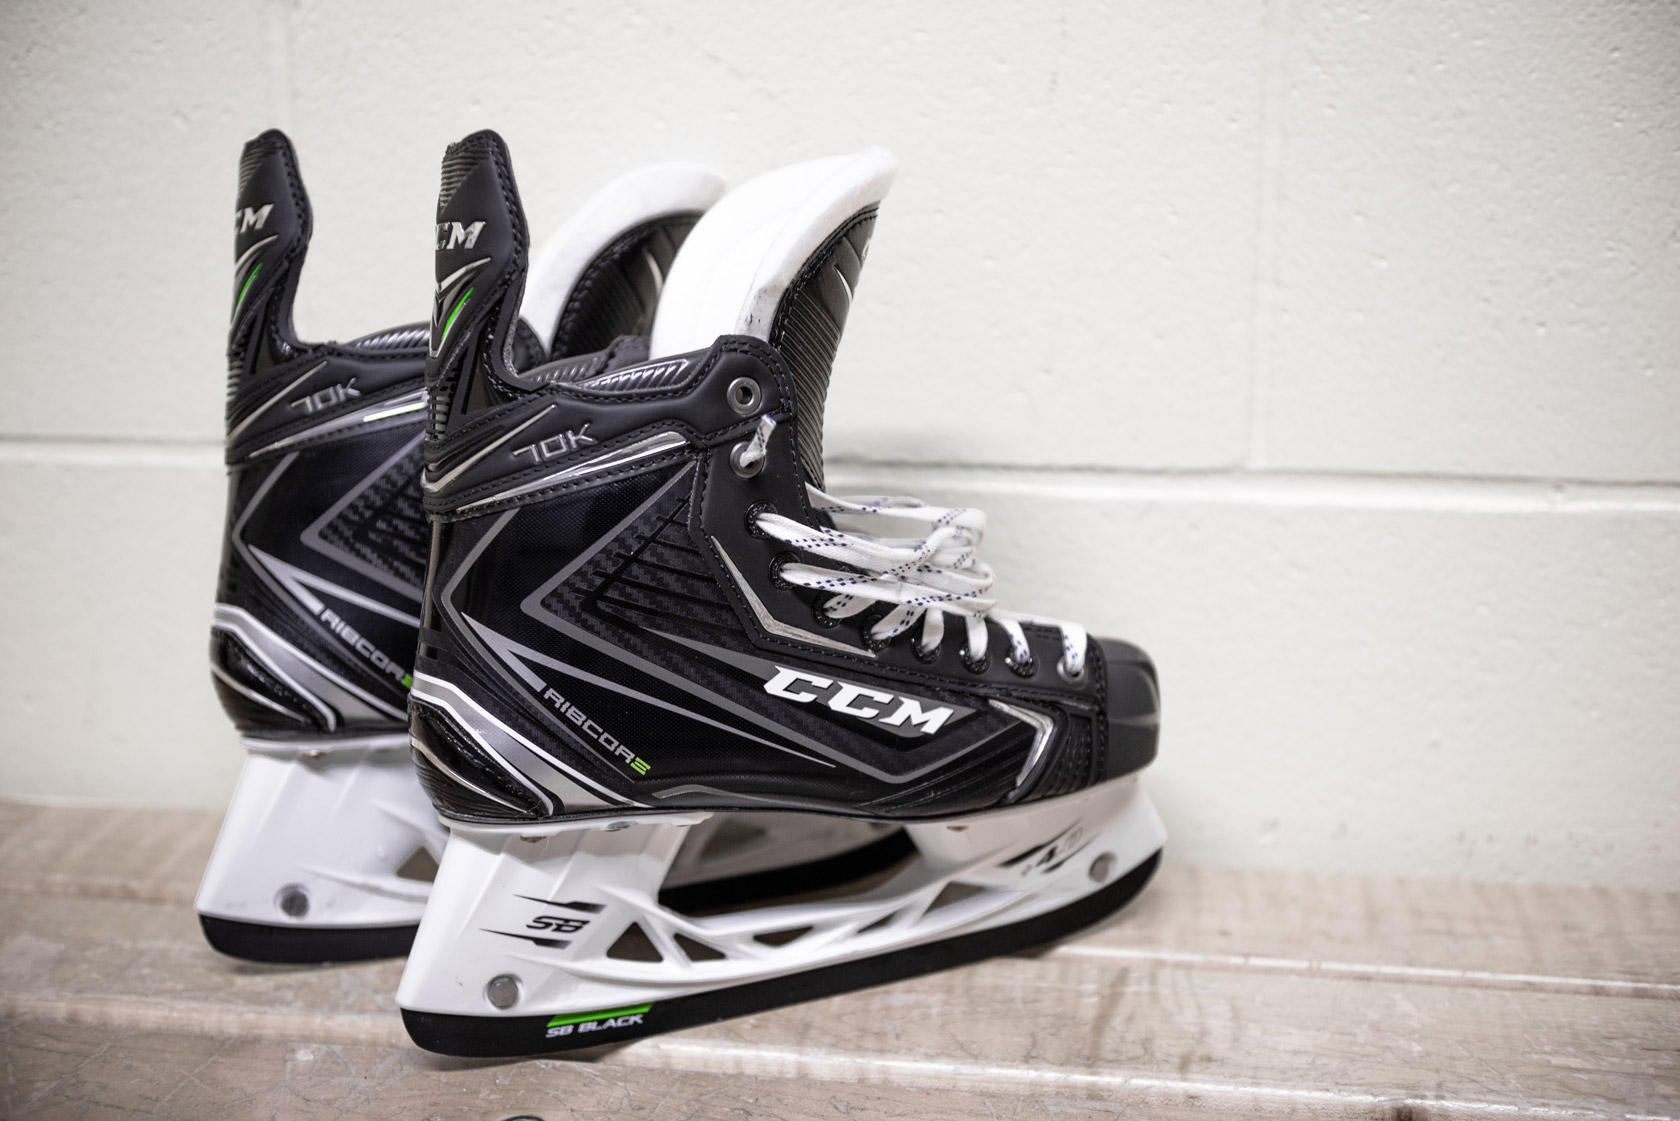 CCM Ribcor 70K Hockey Skates Product Review available at Source For Sports